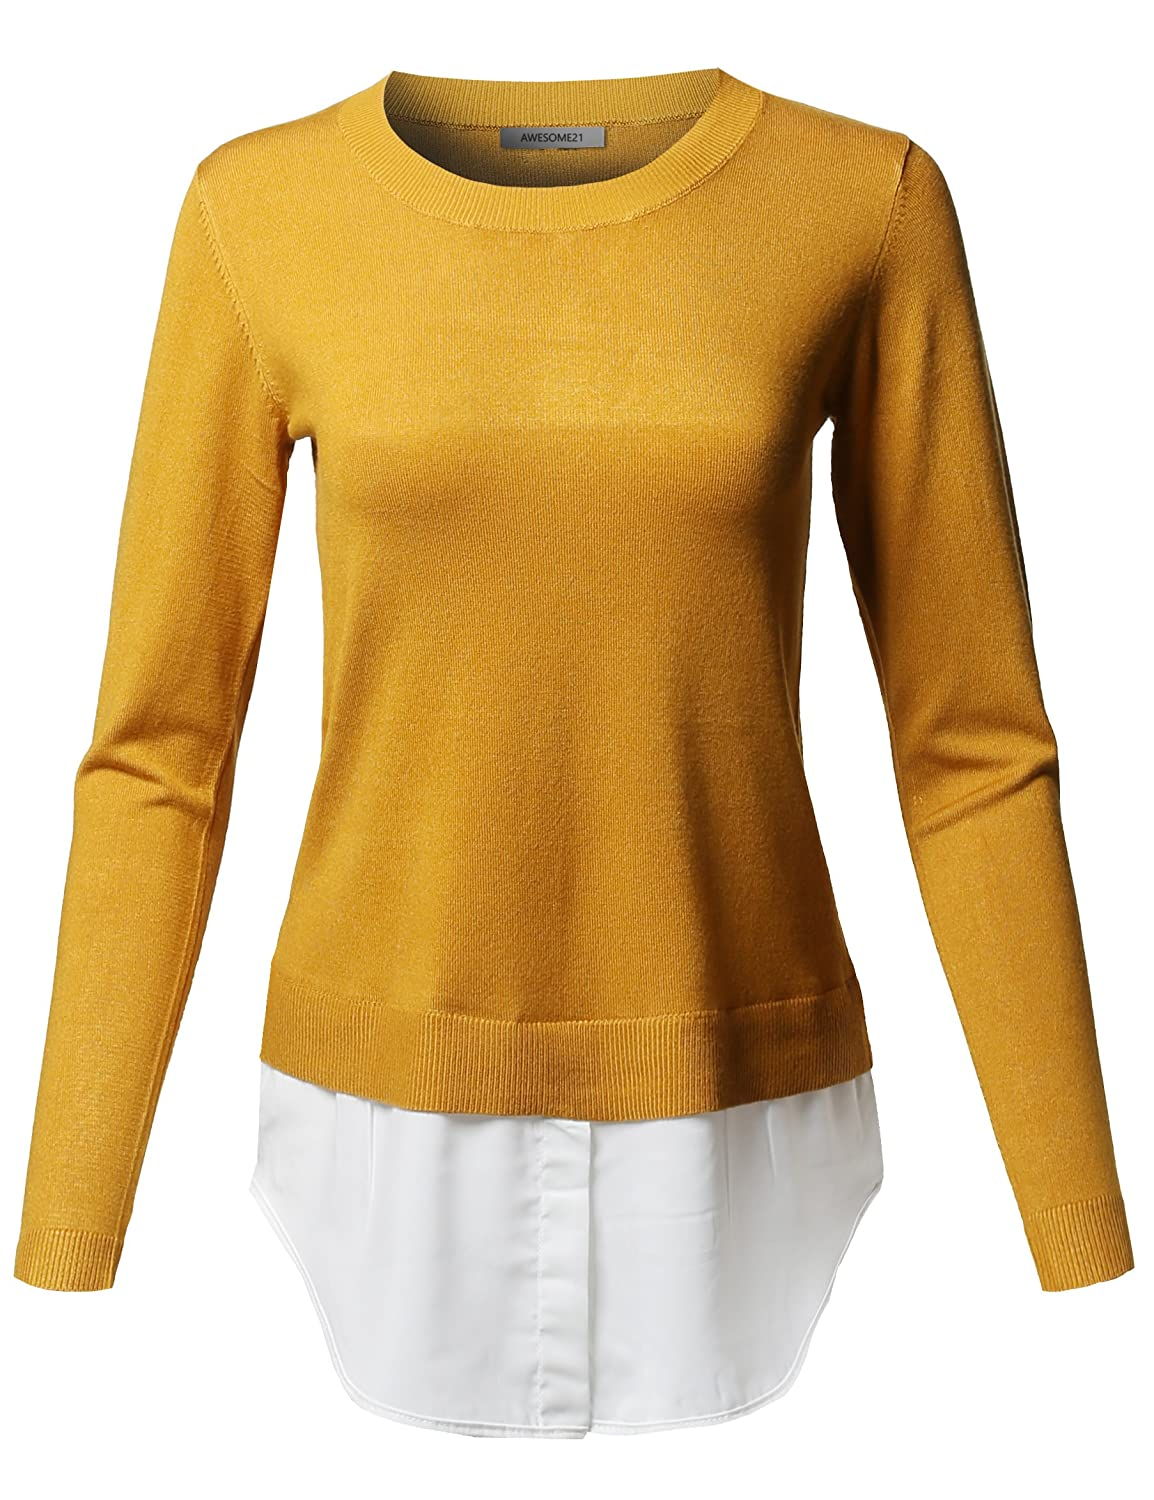 Awesome21 Women's Classic Soft Stretch Shirt Tail Contrast Viscose Sweater Top